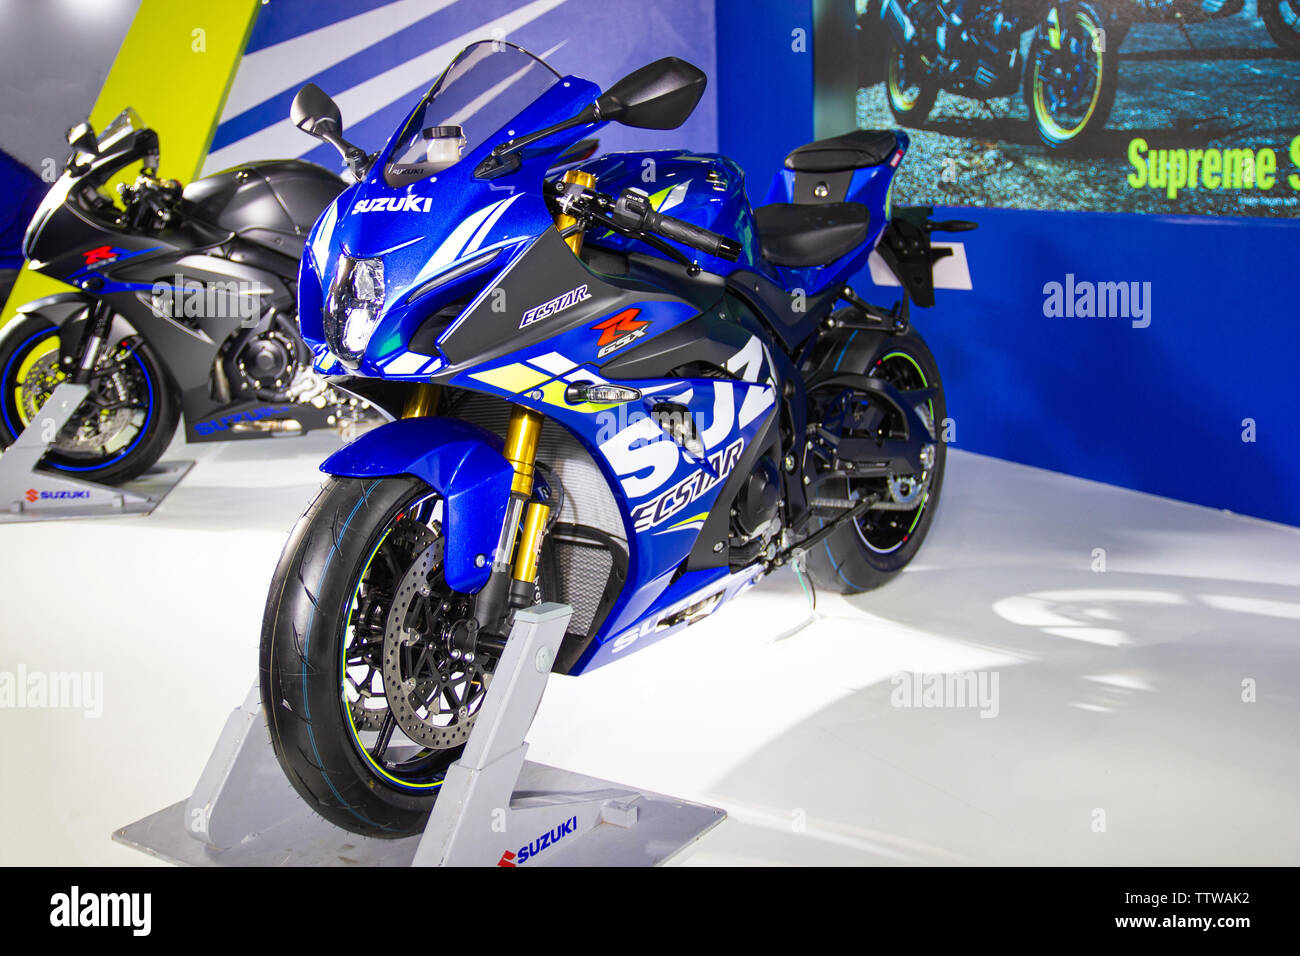 Suzuki Motorcycles For Sale >> New Motorcycles For Sale Stock Photos New Motorcycles For